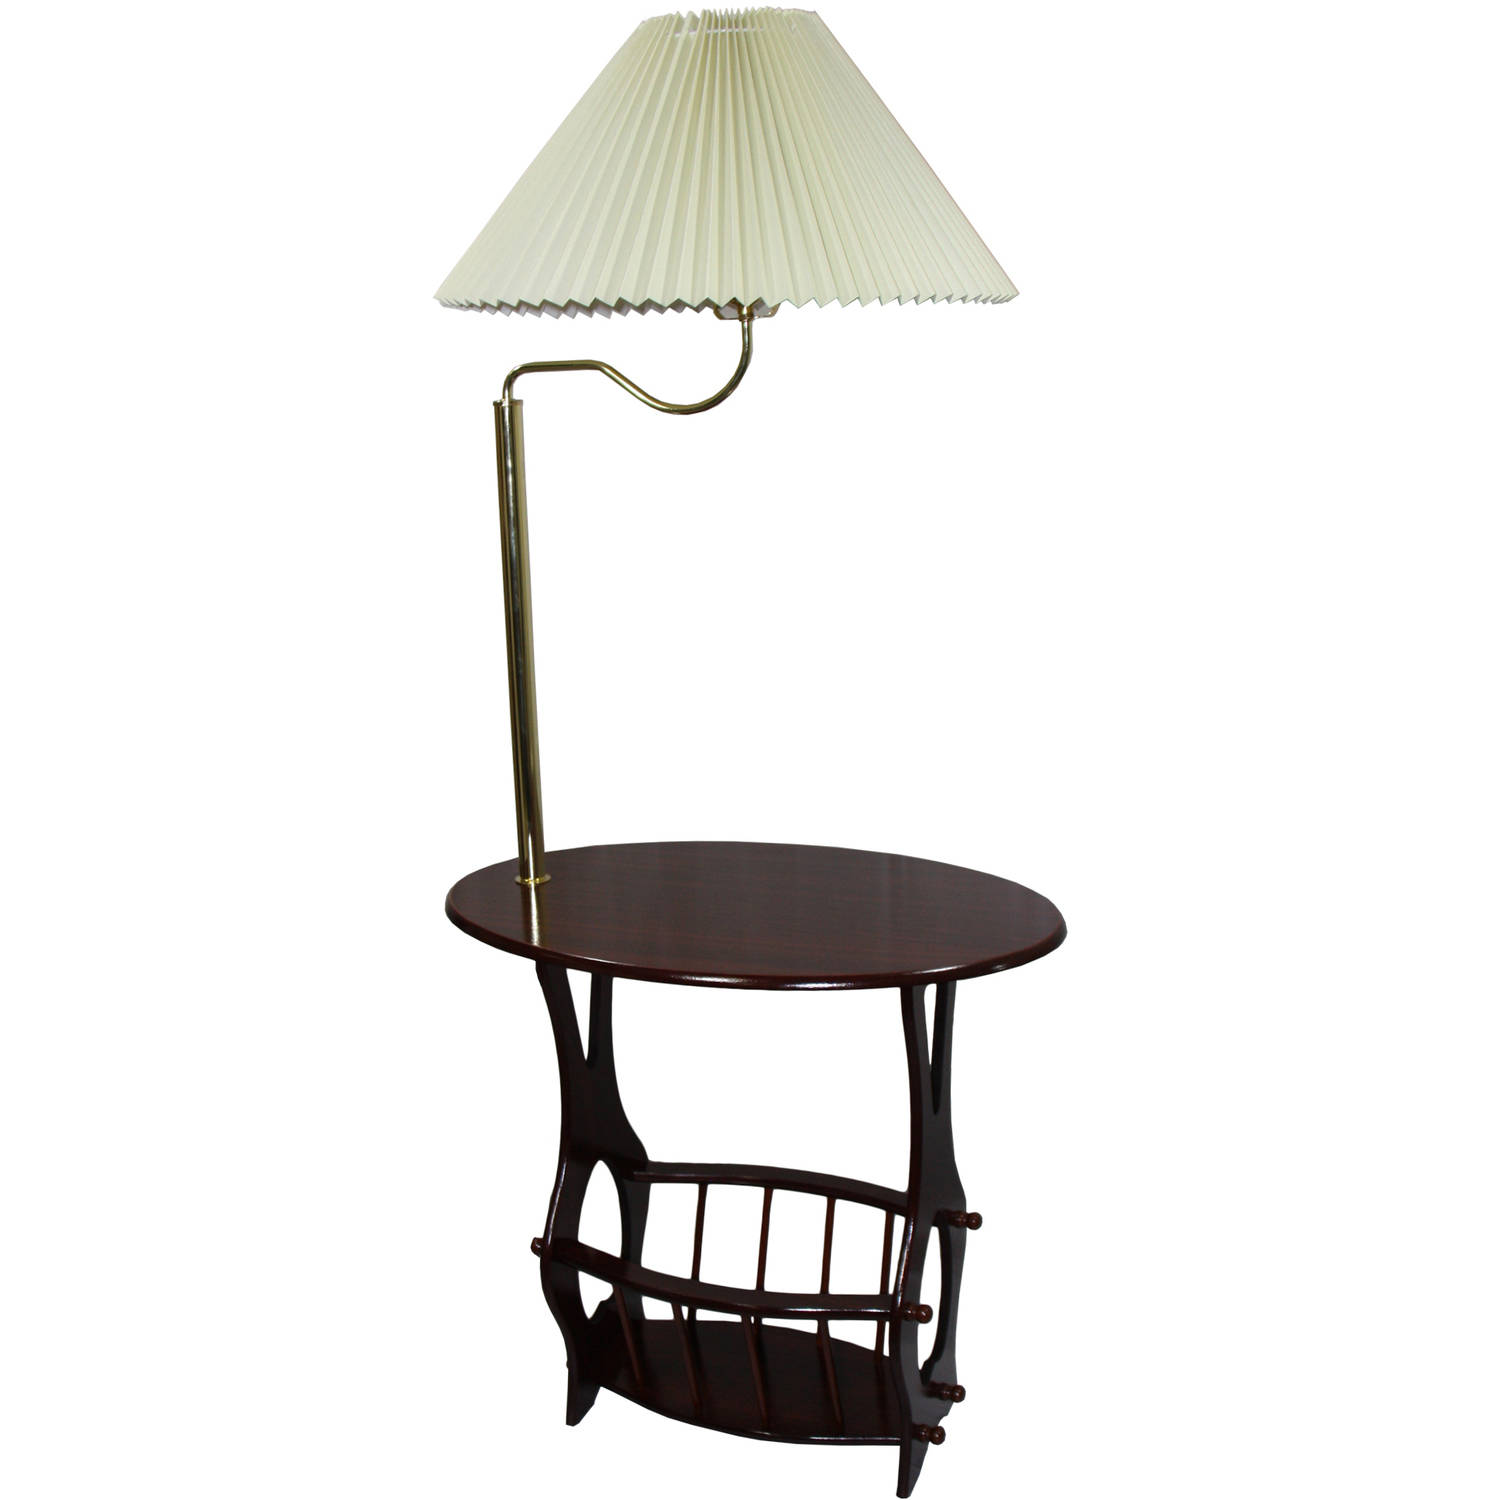 Floor lamp tables - Floor Lamp Tables 41